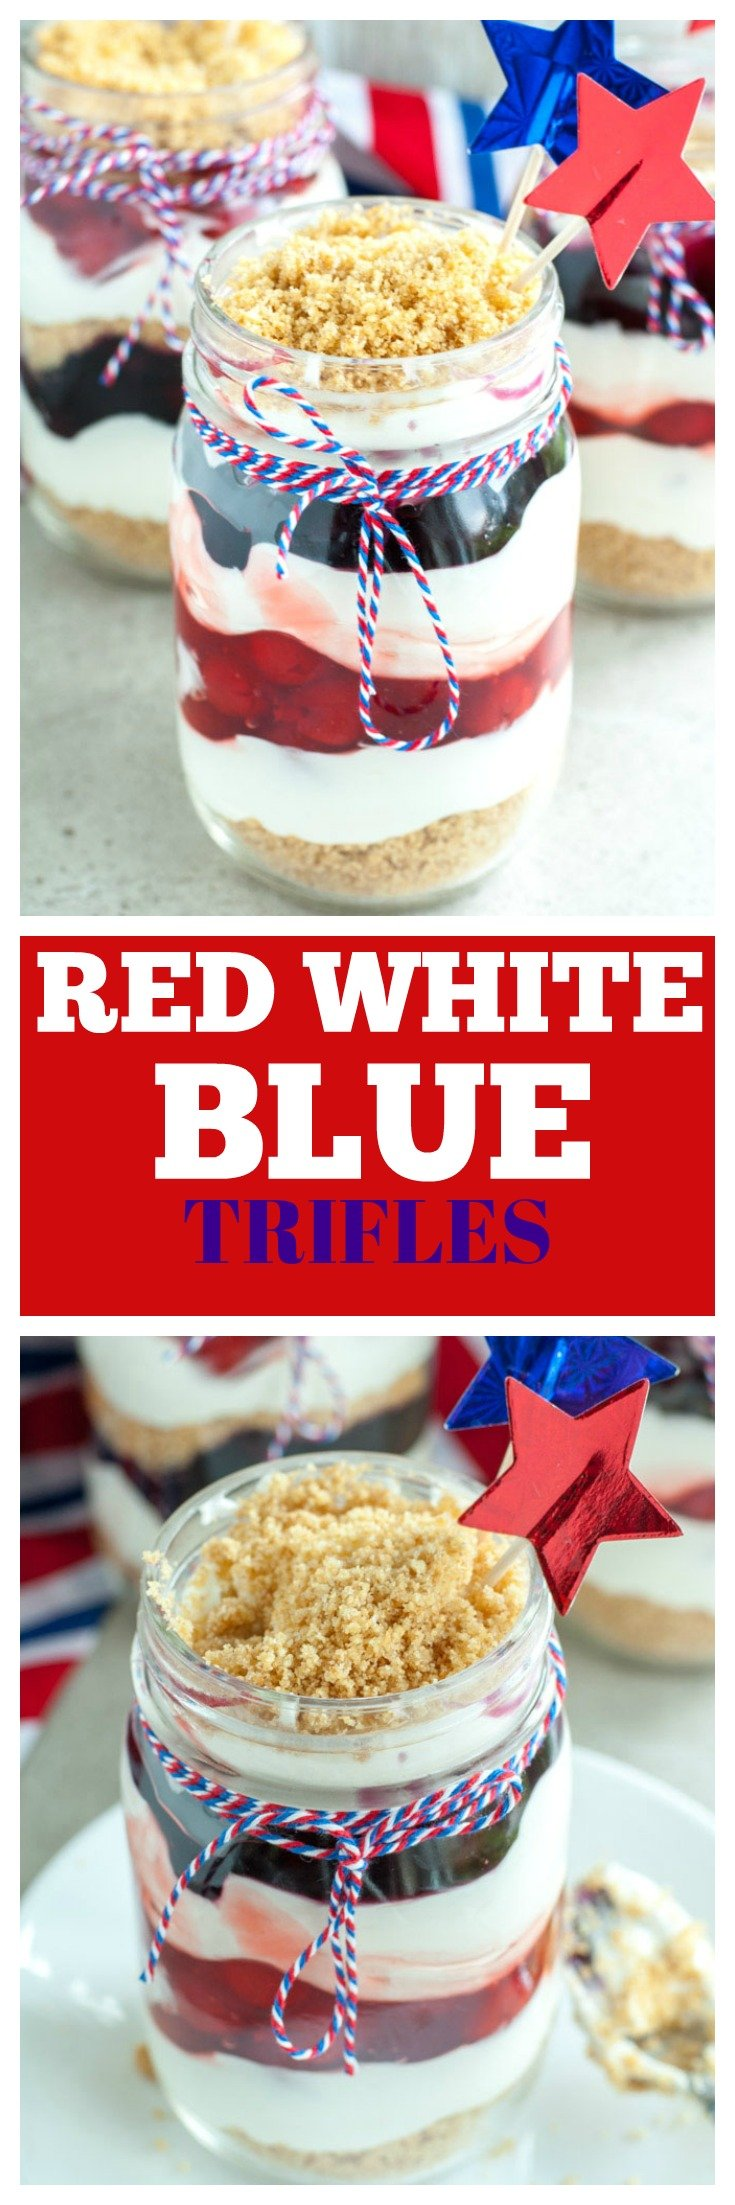 Red White and Blue Trifles perfect no bake dessert for 4th of July or Memorial Day. Made with blueberry pie filling and cherry pie filling.